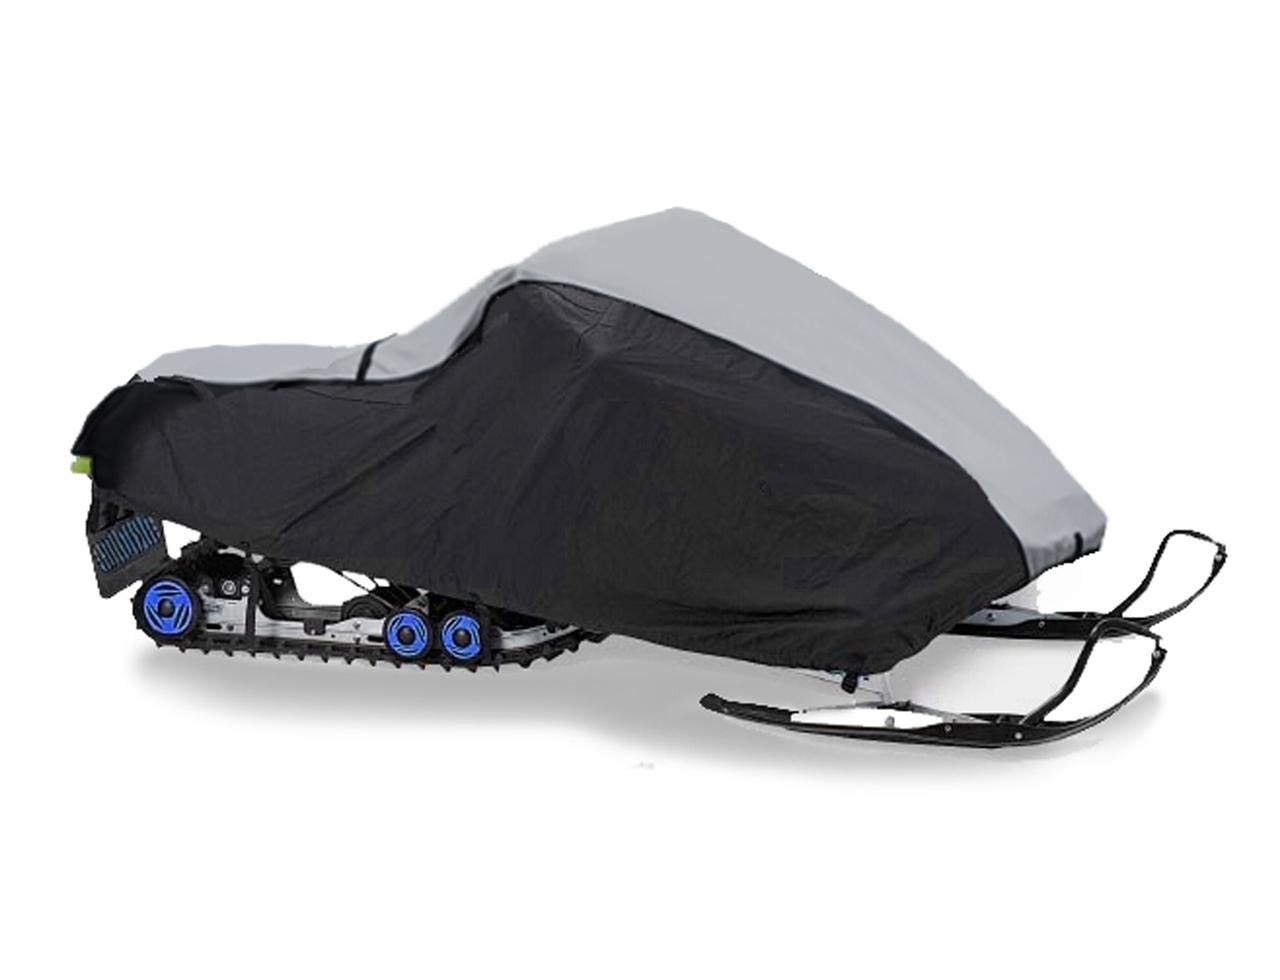 Super Quality Trailerable Snowmobile Sled Cover fits Polaris 800 PRO-RMK 155 2011 2012 2013 2014